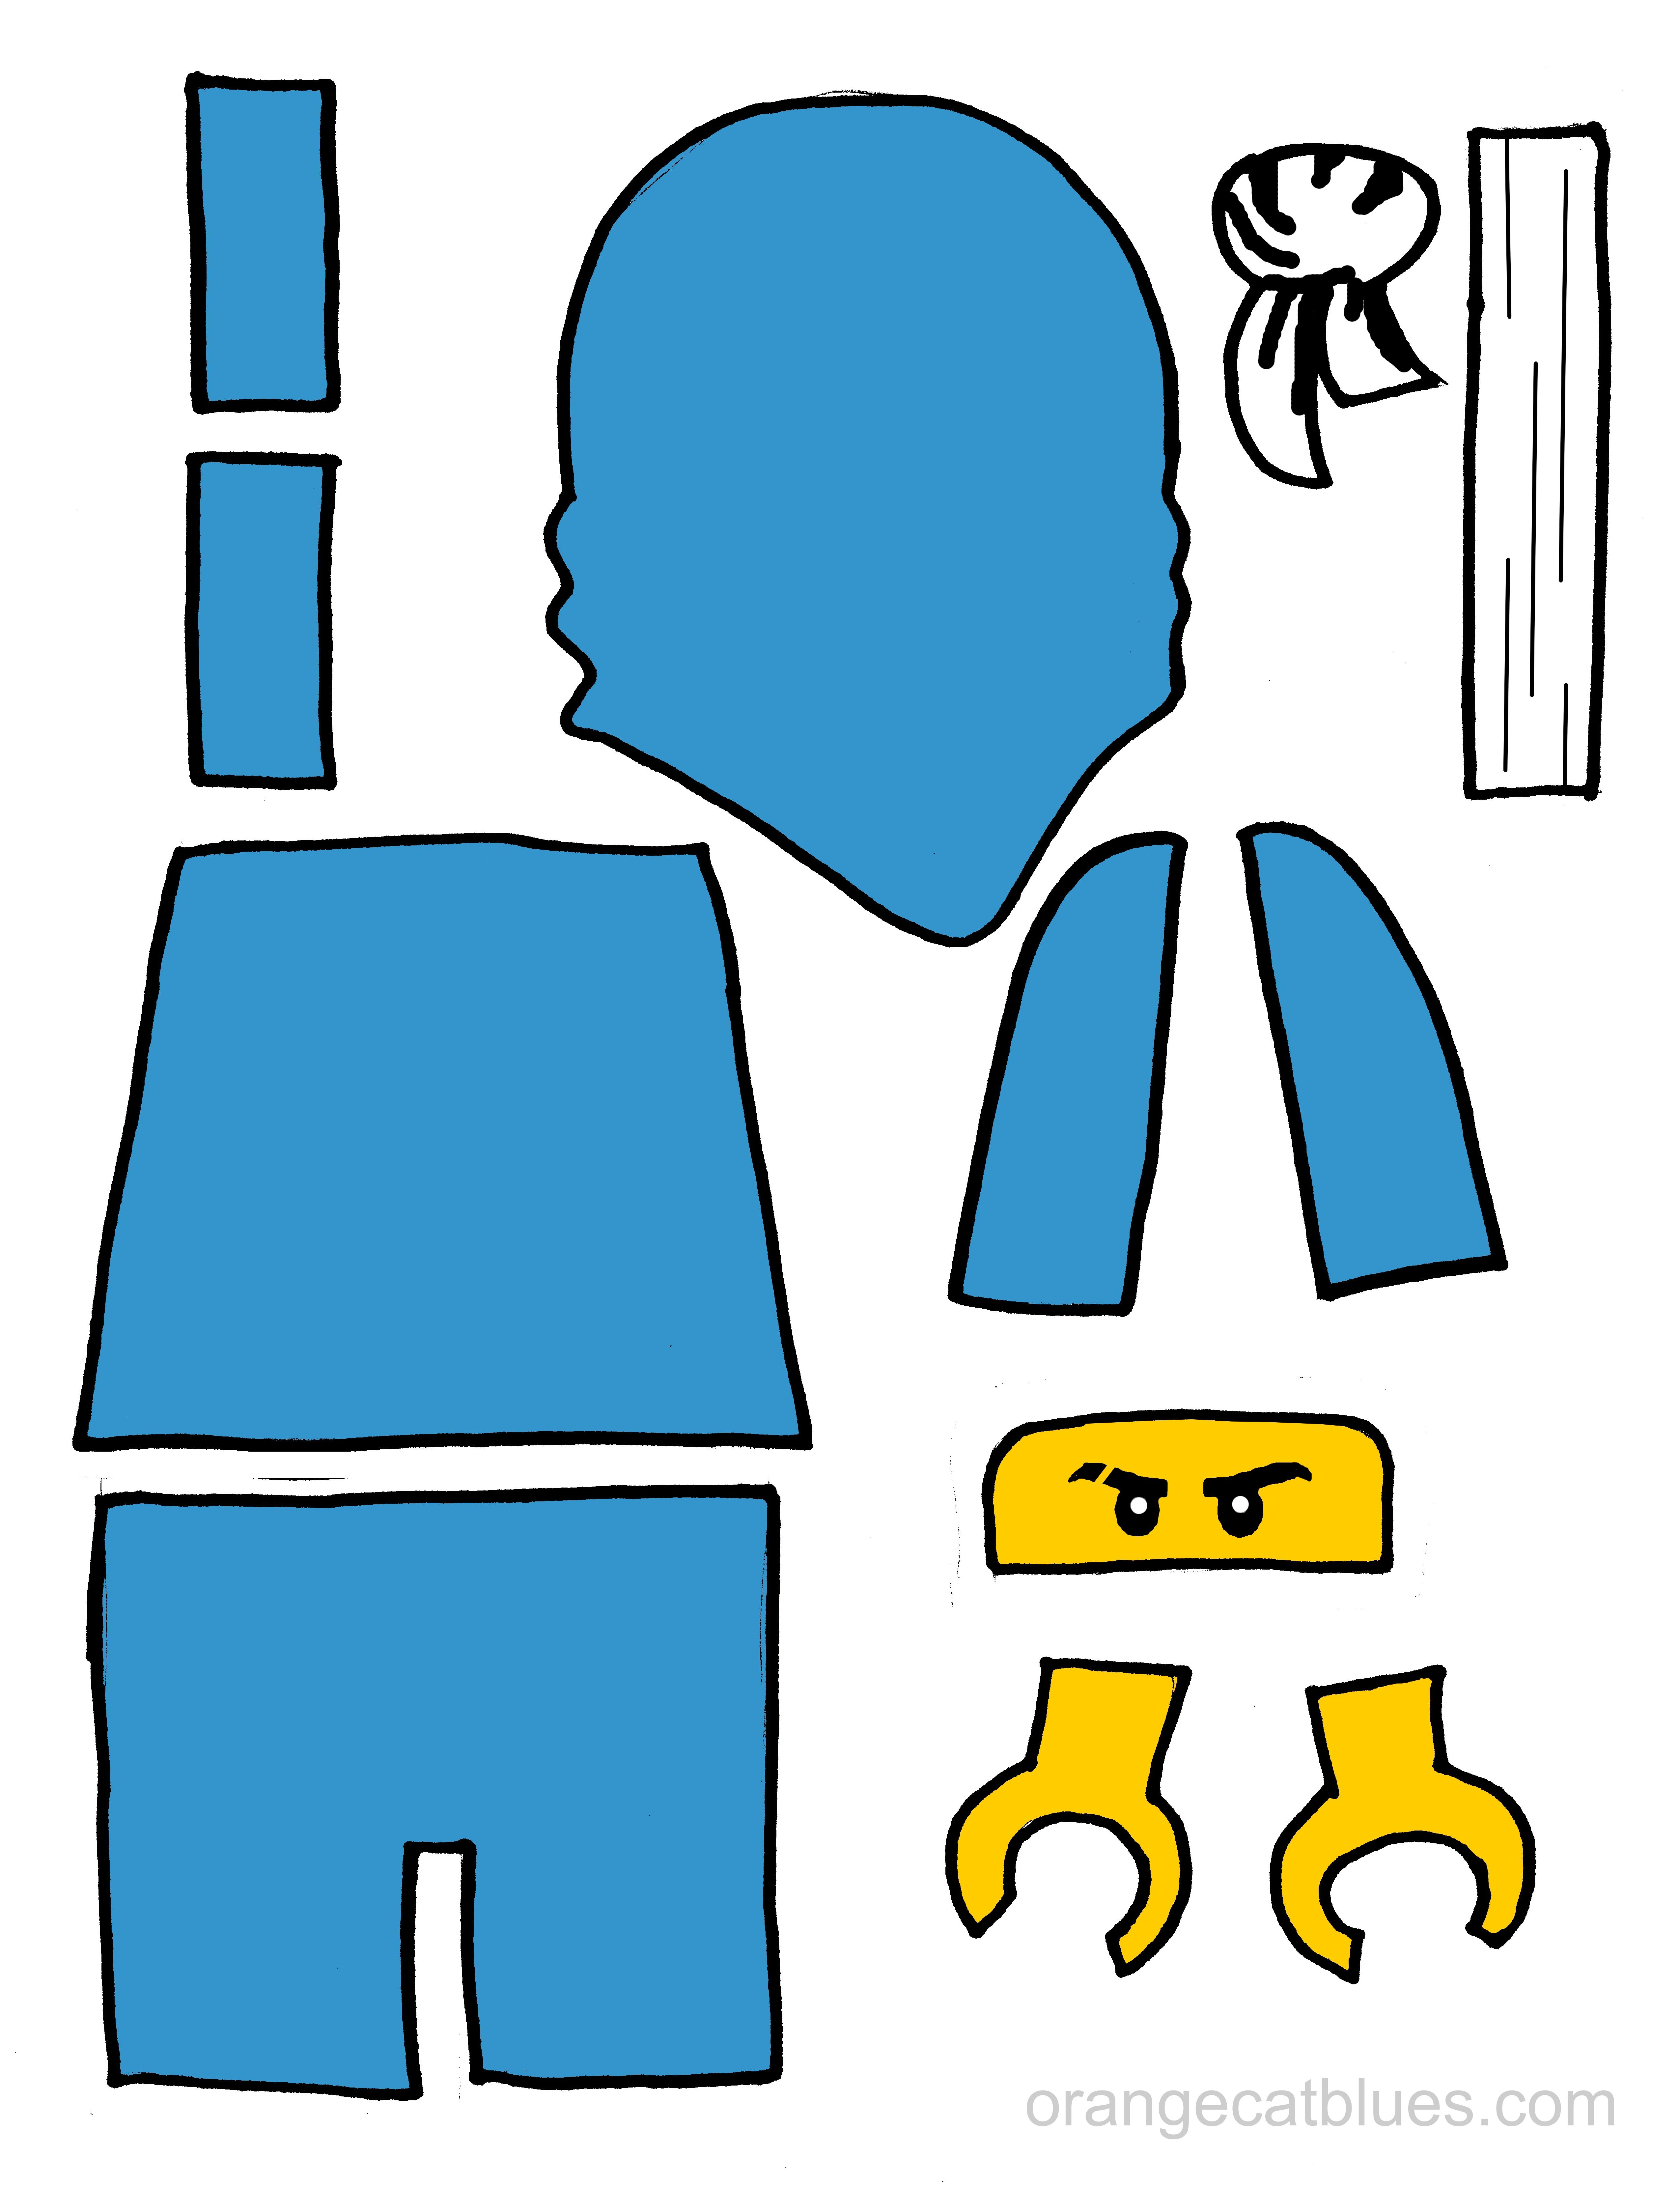 Lego Ninjago printable cutout for toddler gluestick art: The Blue ...